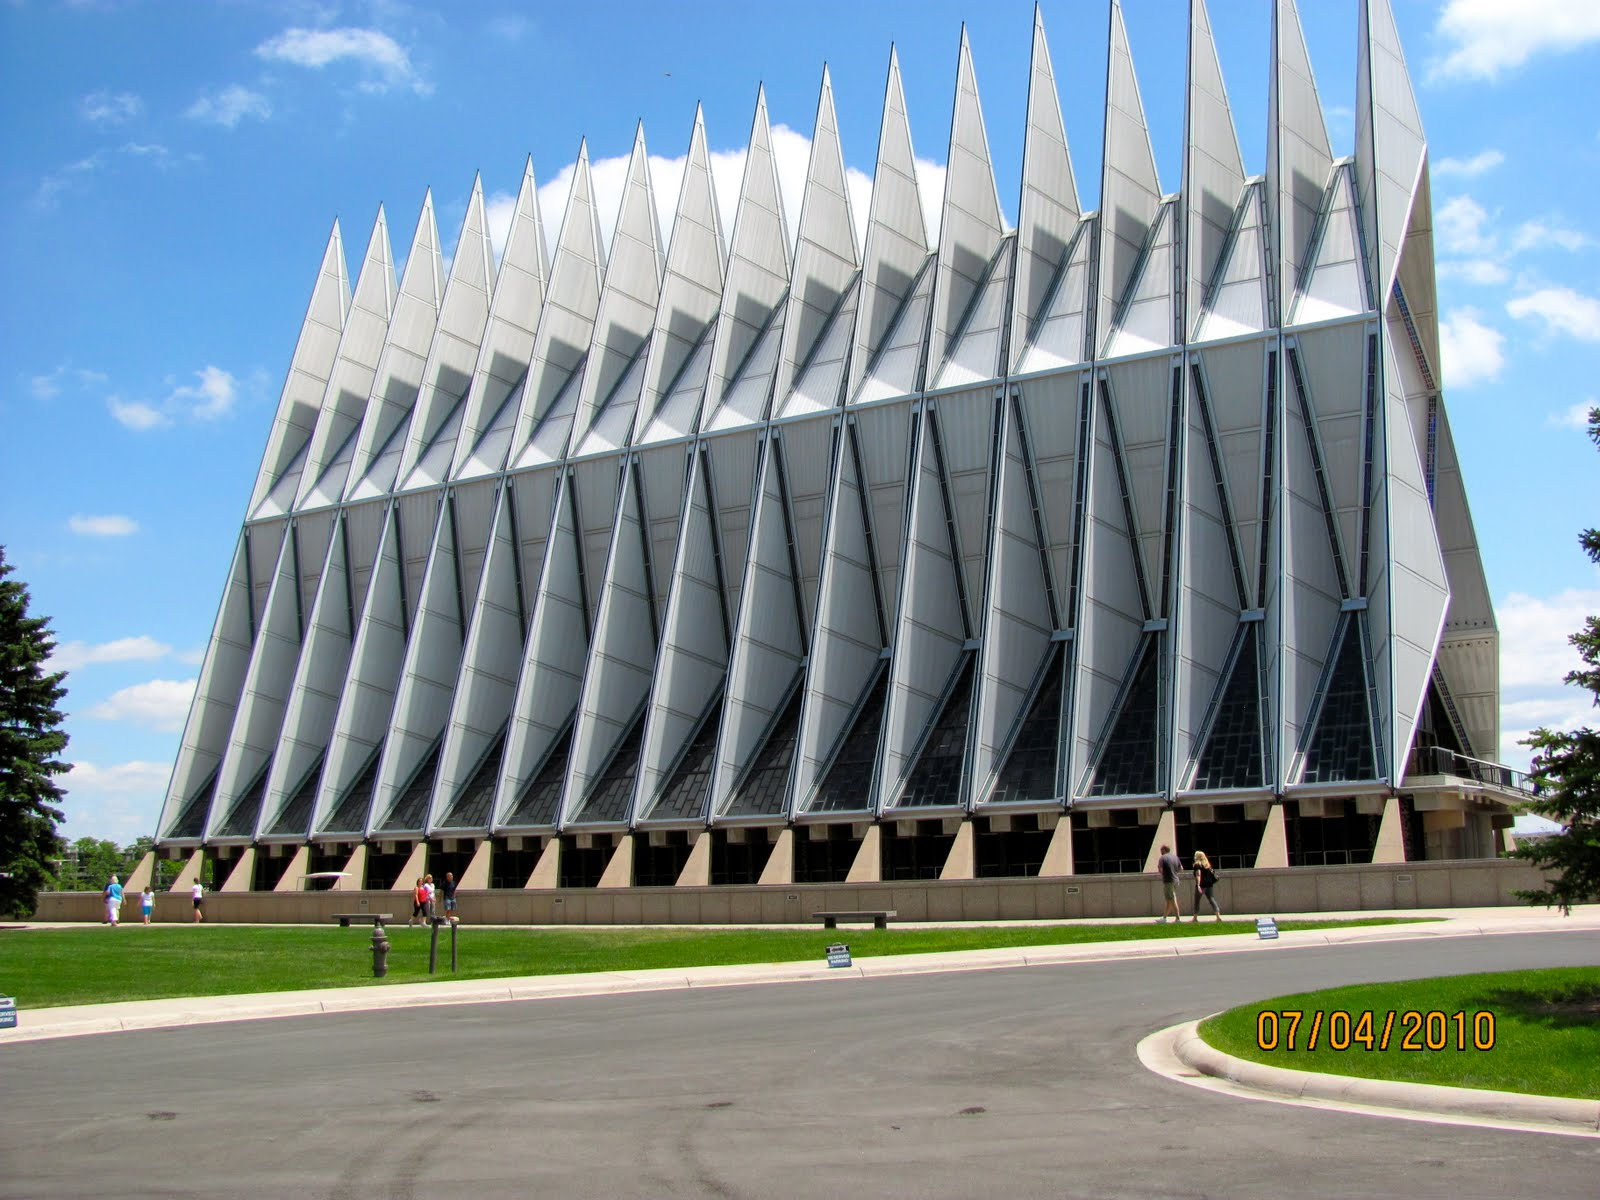 America by RV: U.S. Air Force Academy Self-Guided Tour